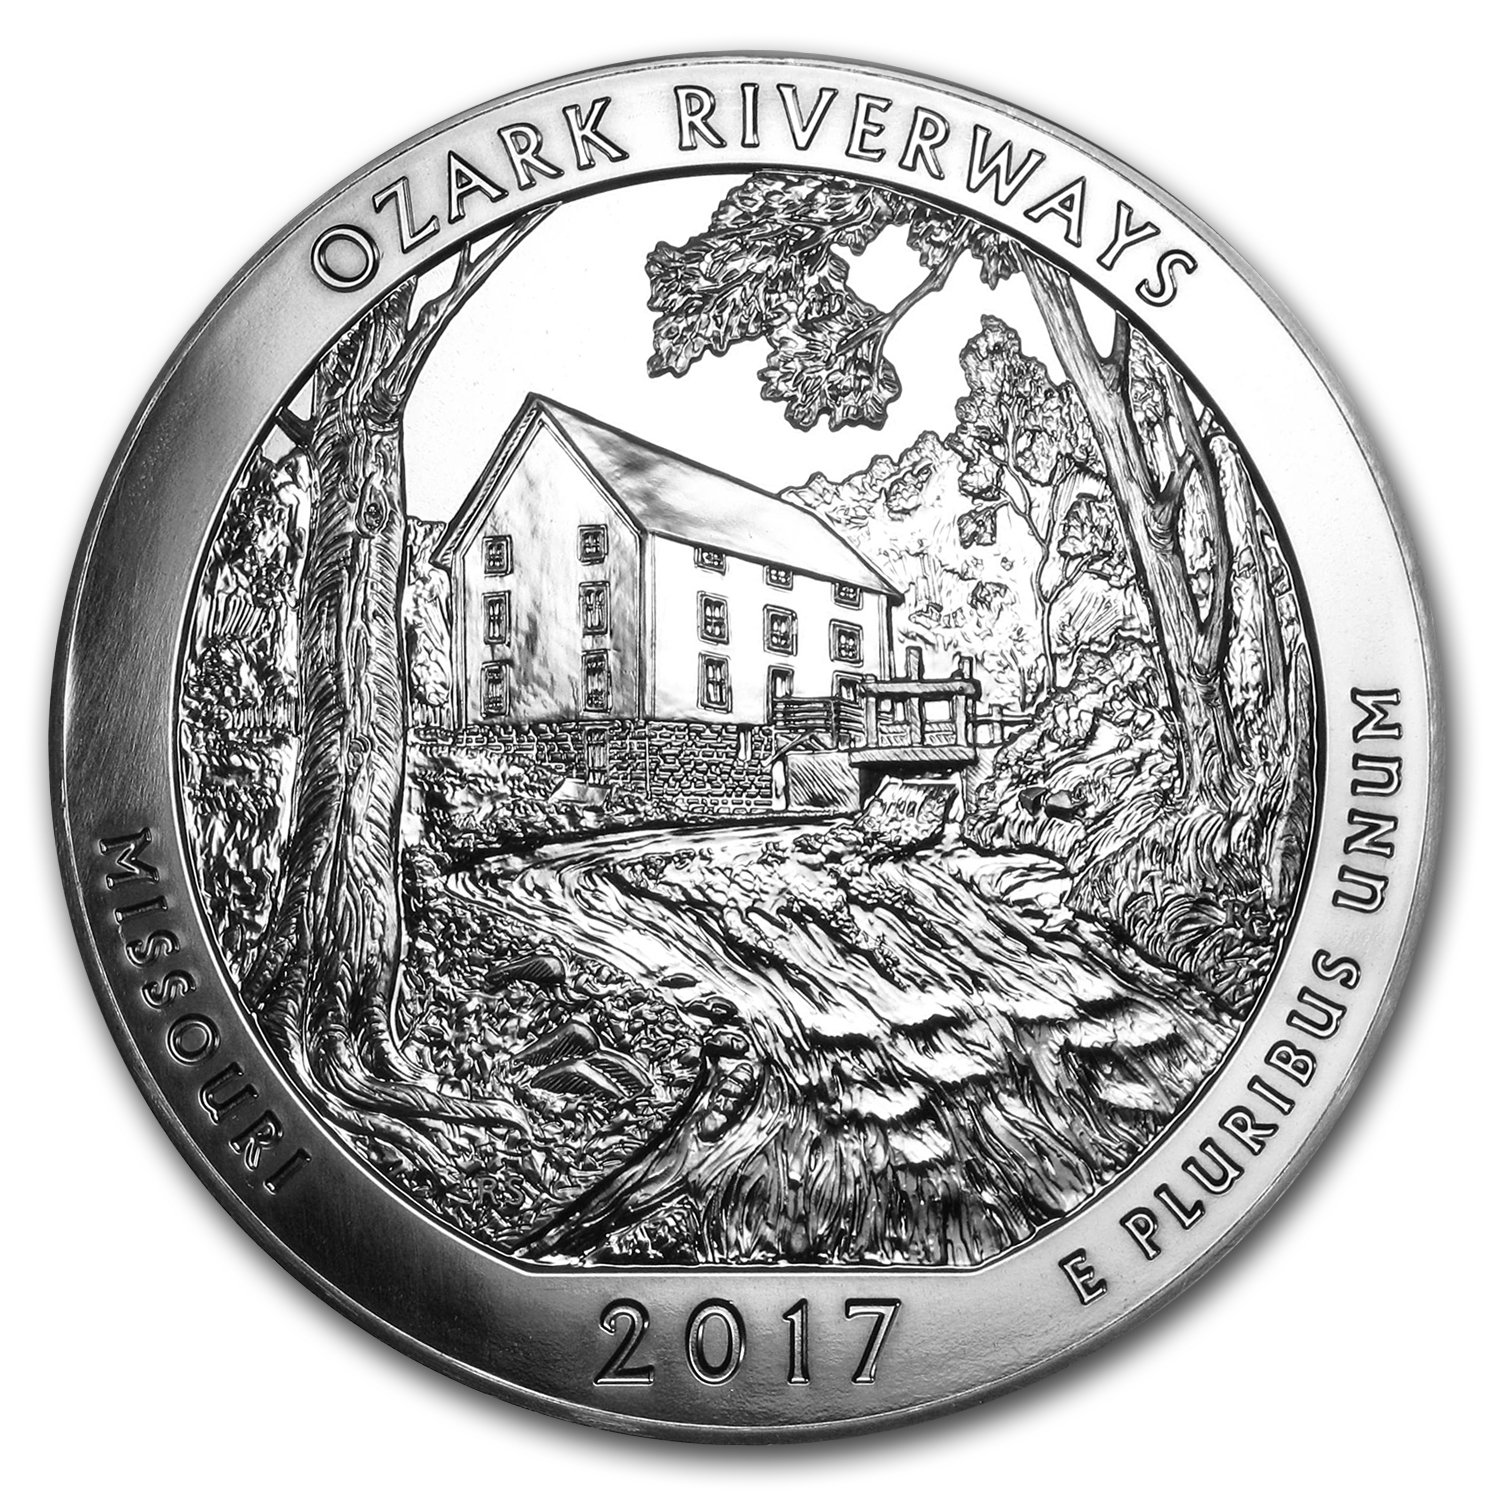 2017 America The Beautiful Ozark Riverways 5 Ounce Silver Coin